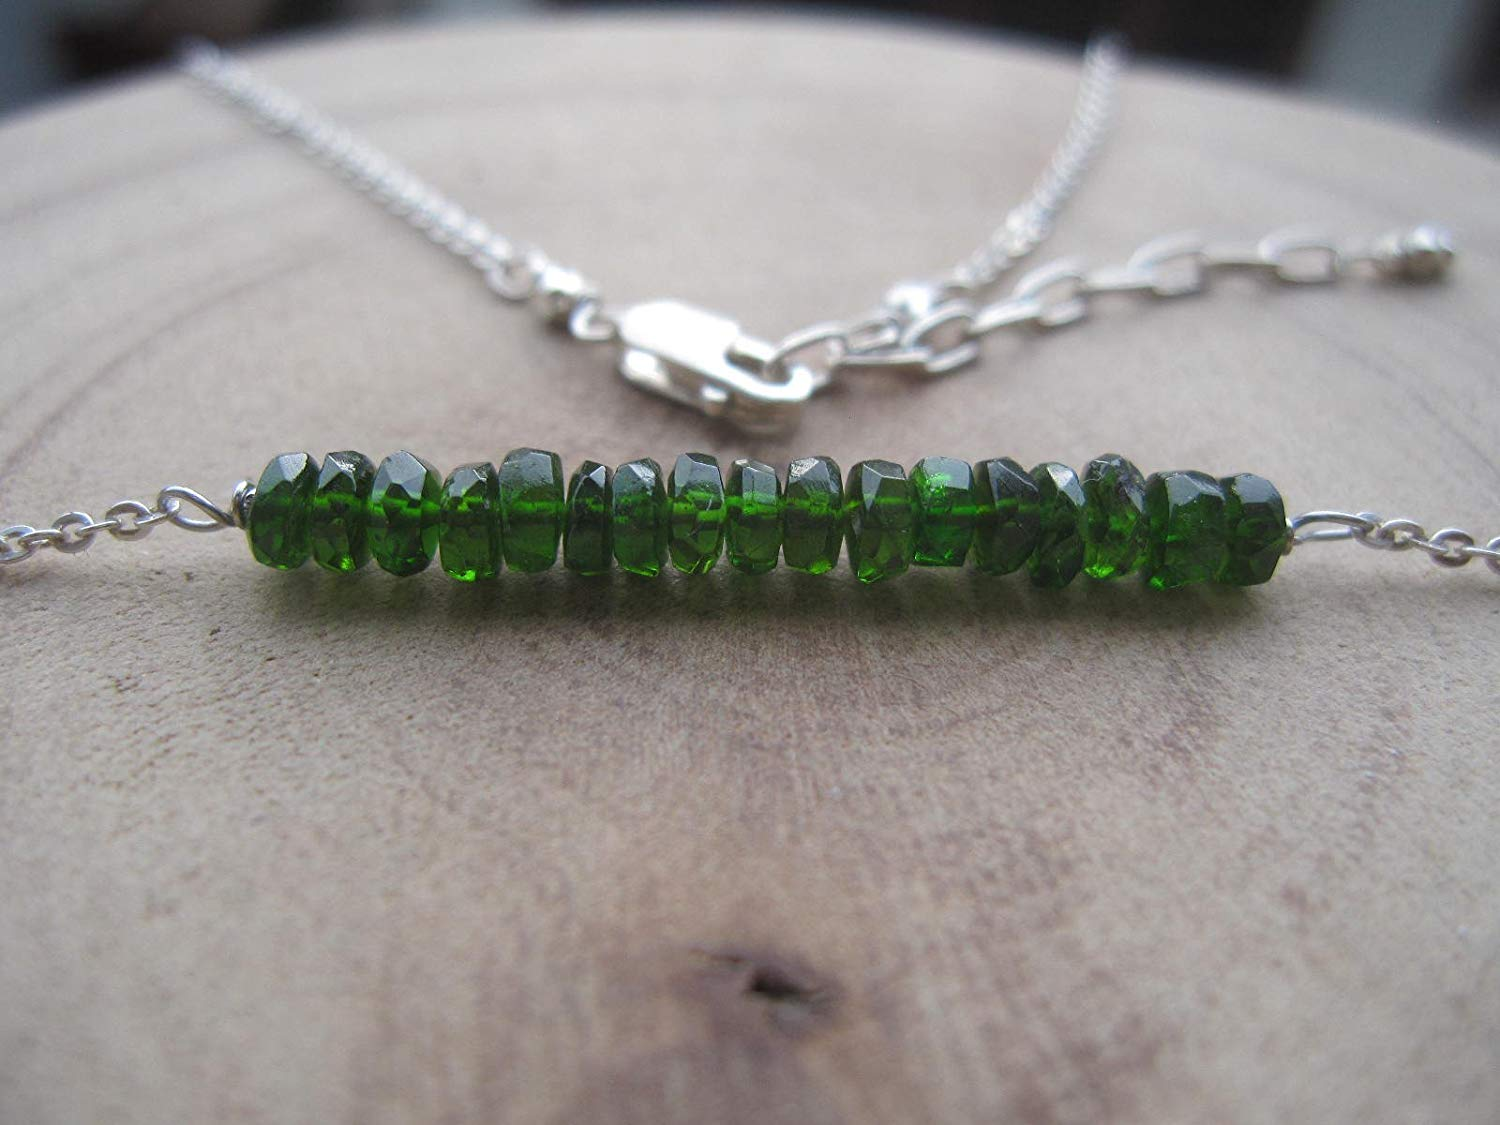 Chrome Diopside Bar Necklace,925 Sterling Silver Chain,Custom Size 15,16,18,20 Inches